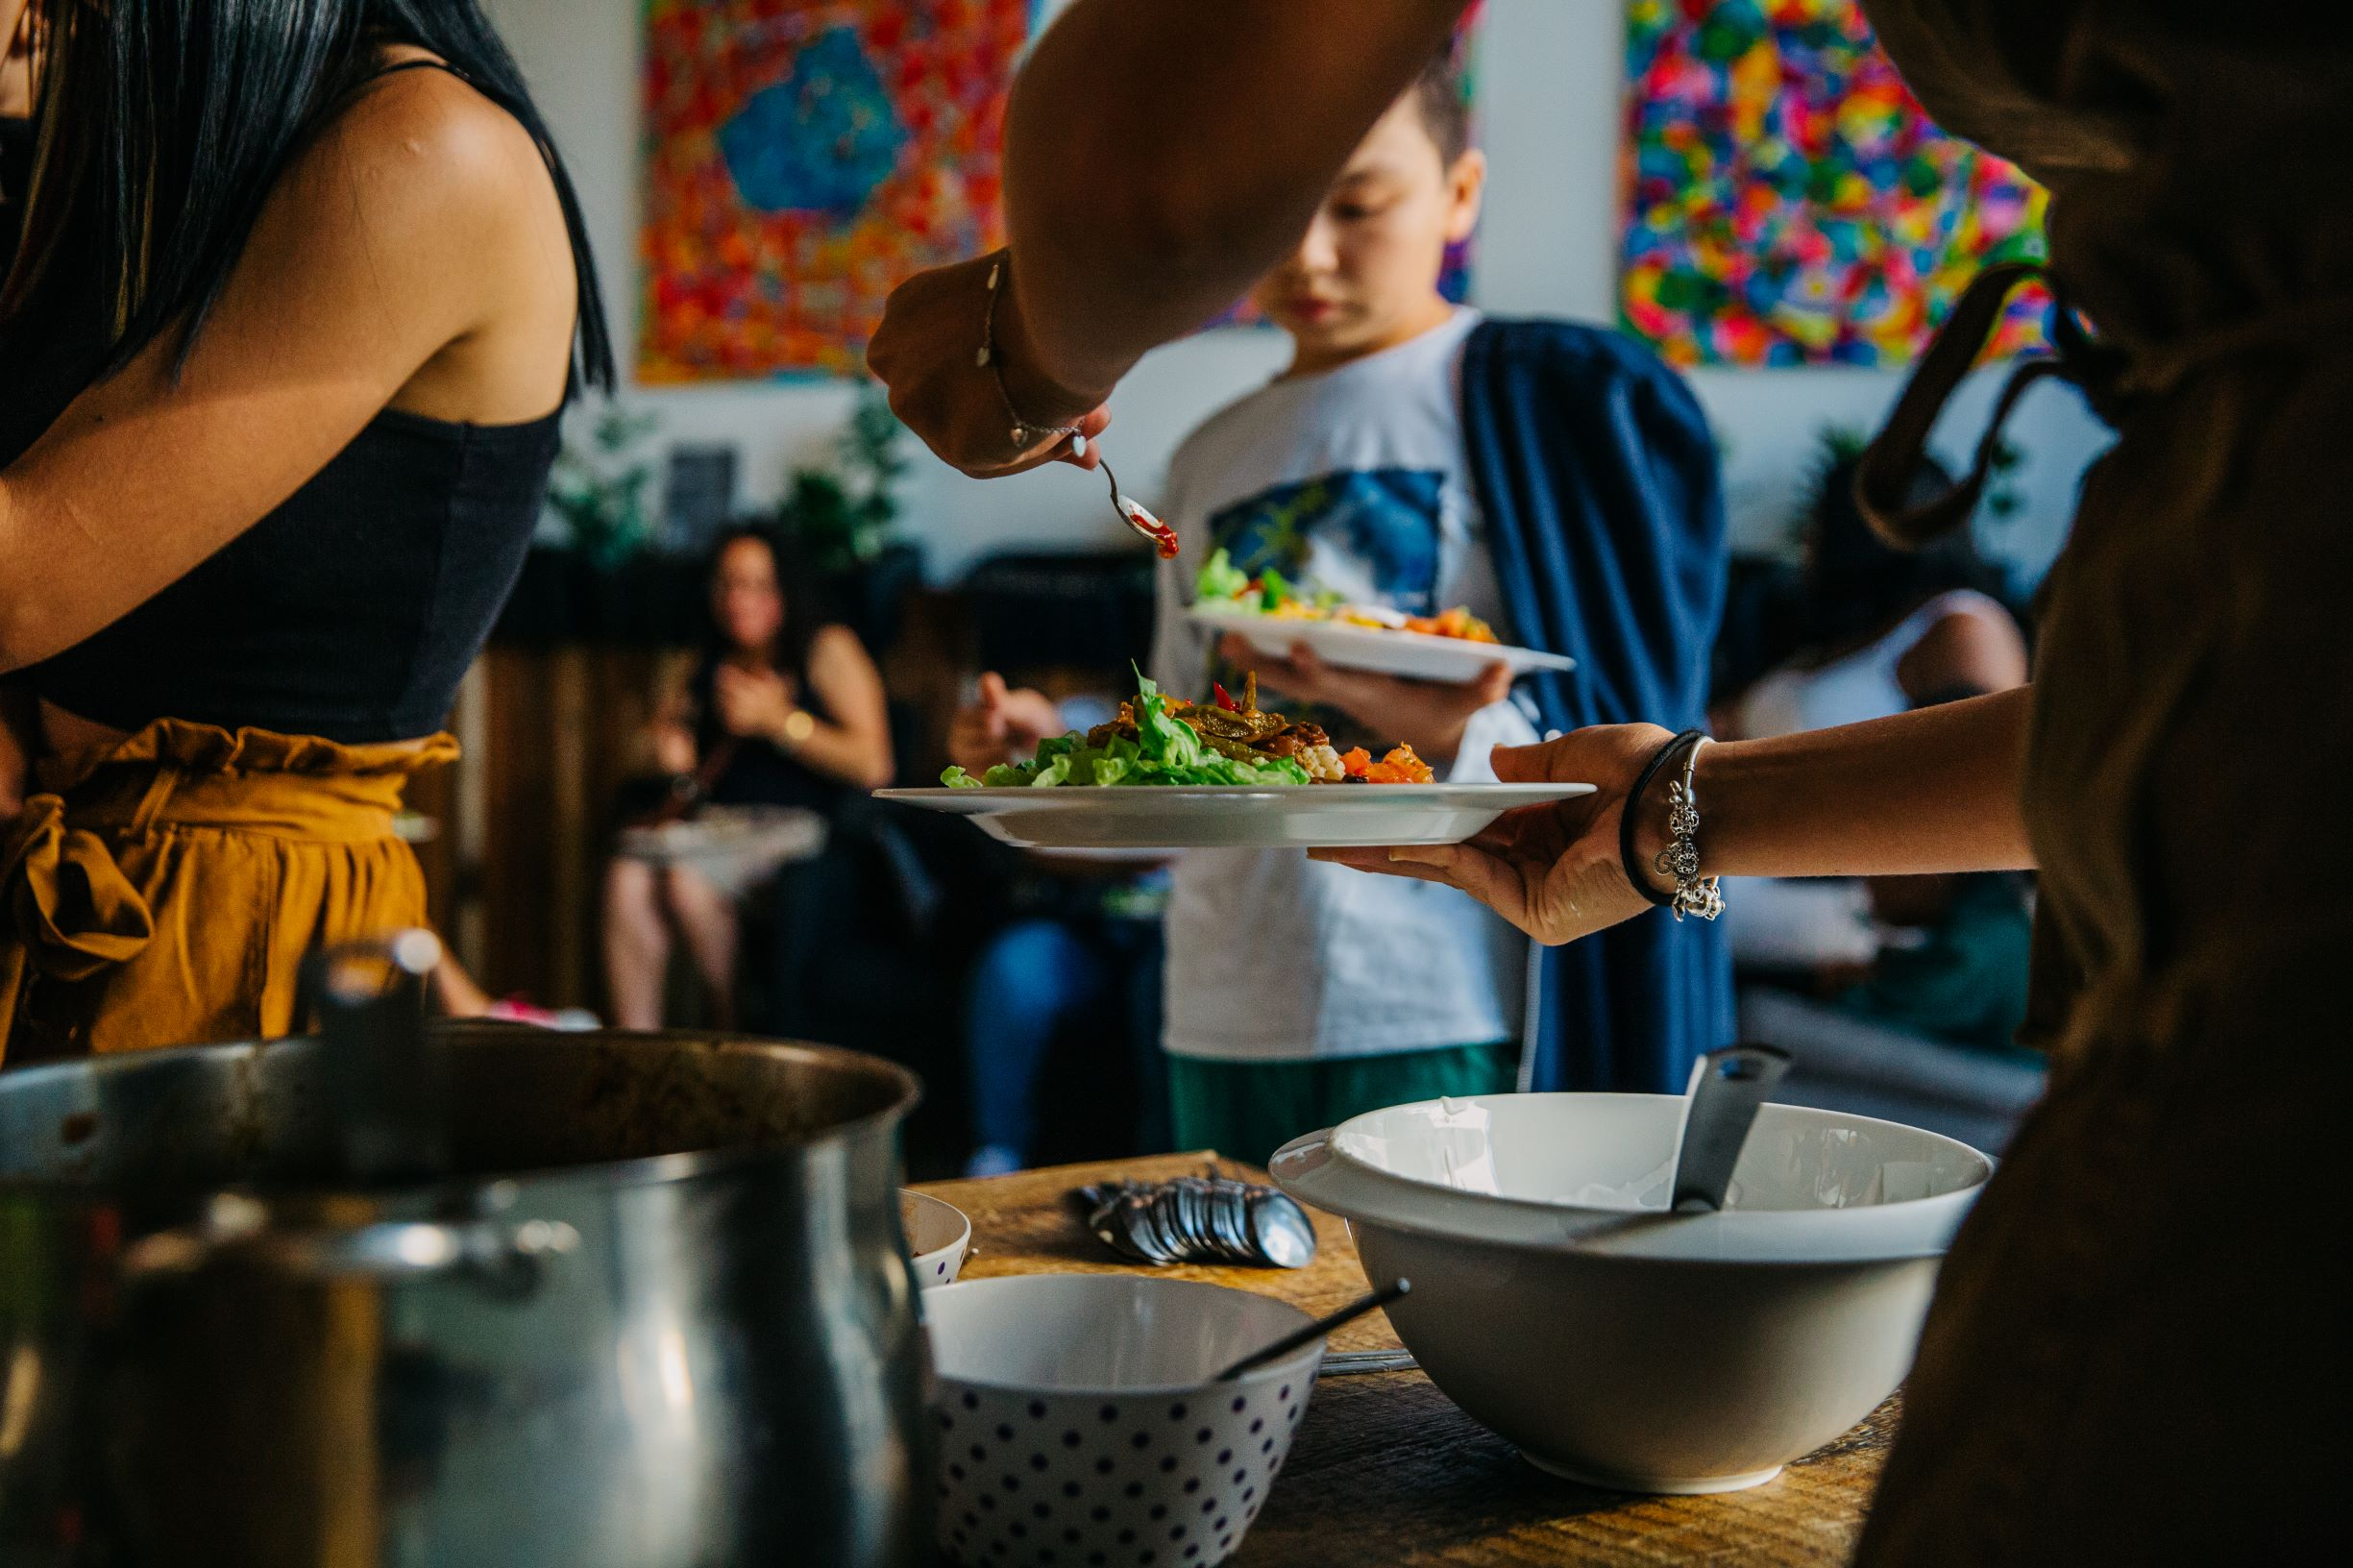 Event | Community Cook and Eat Feast at Redmond Community Centre